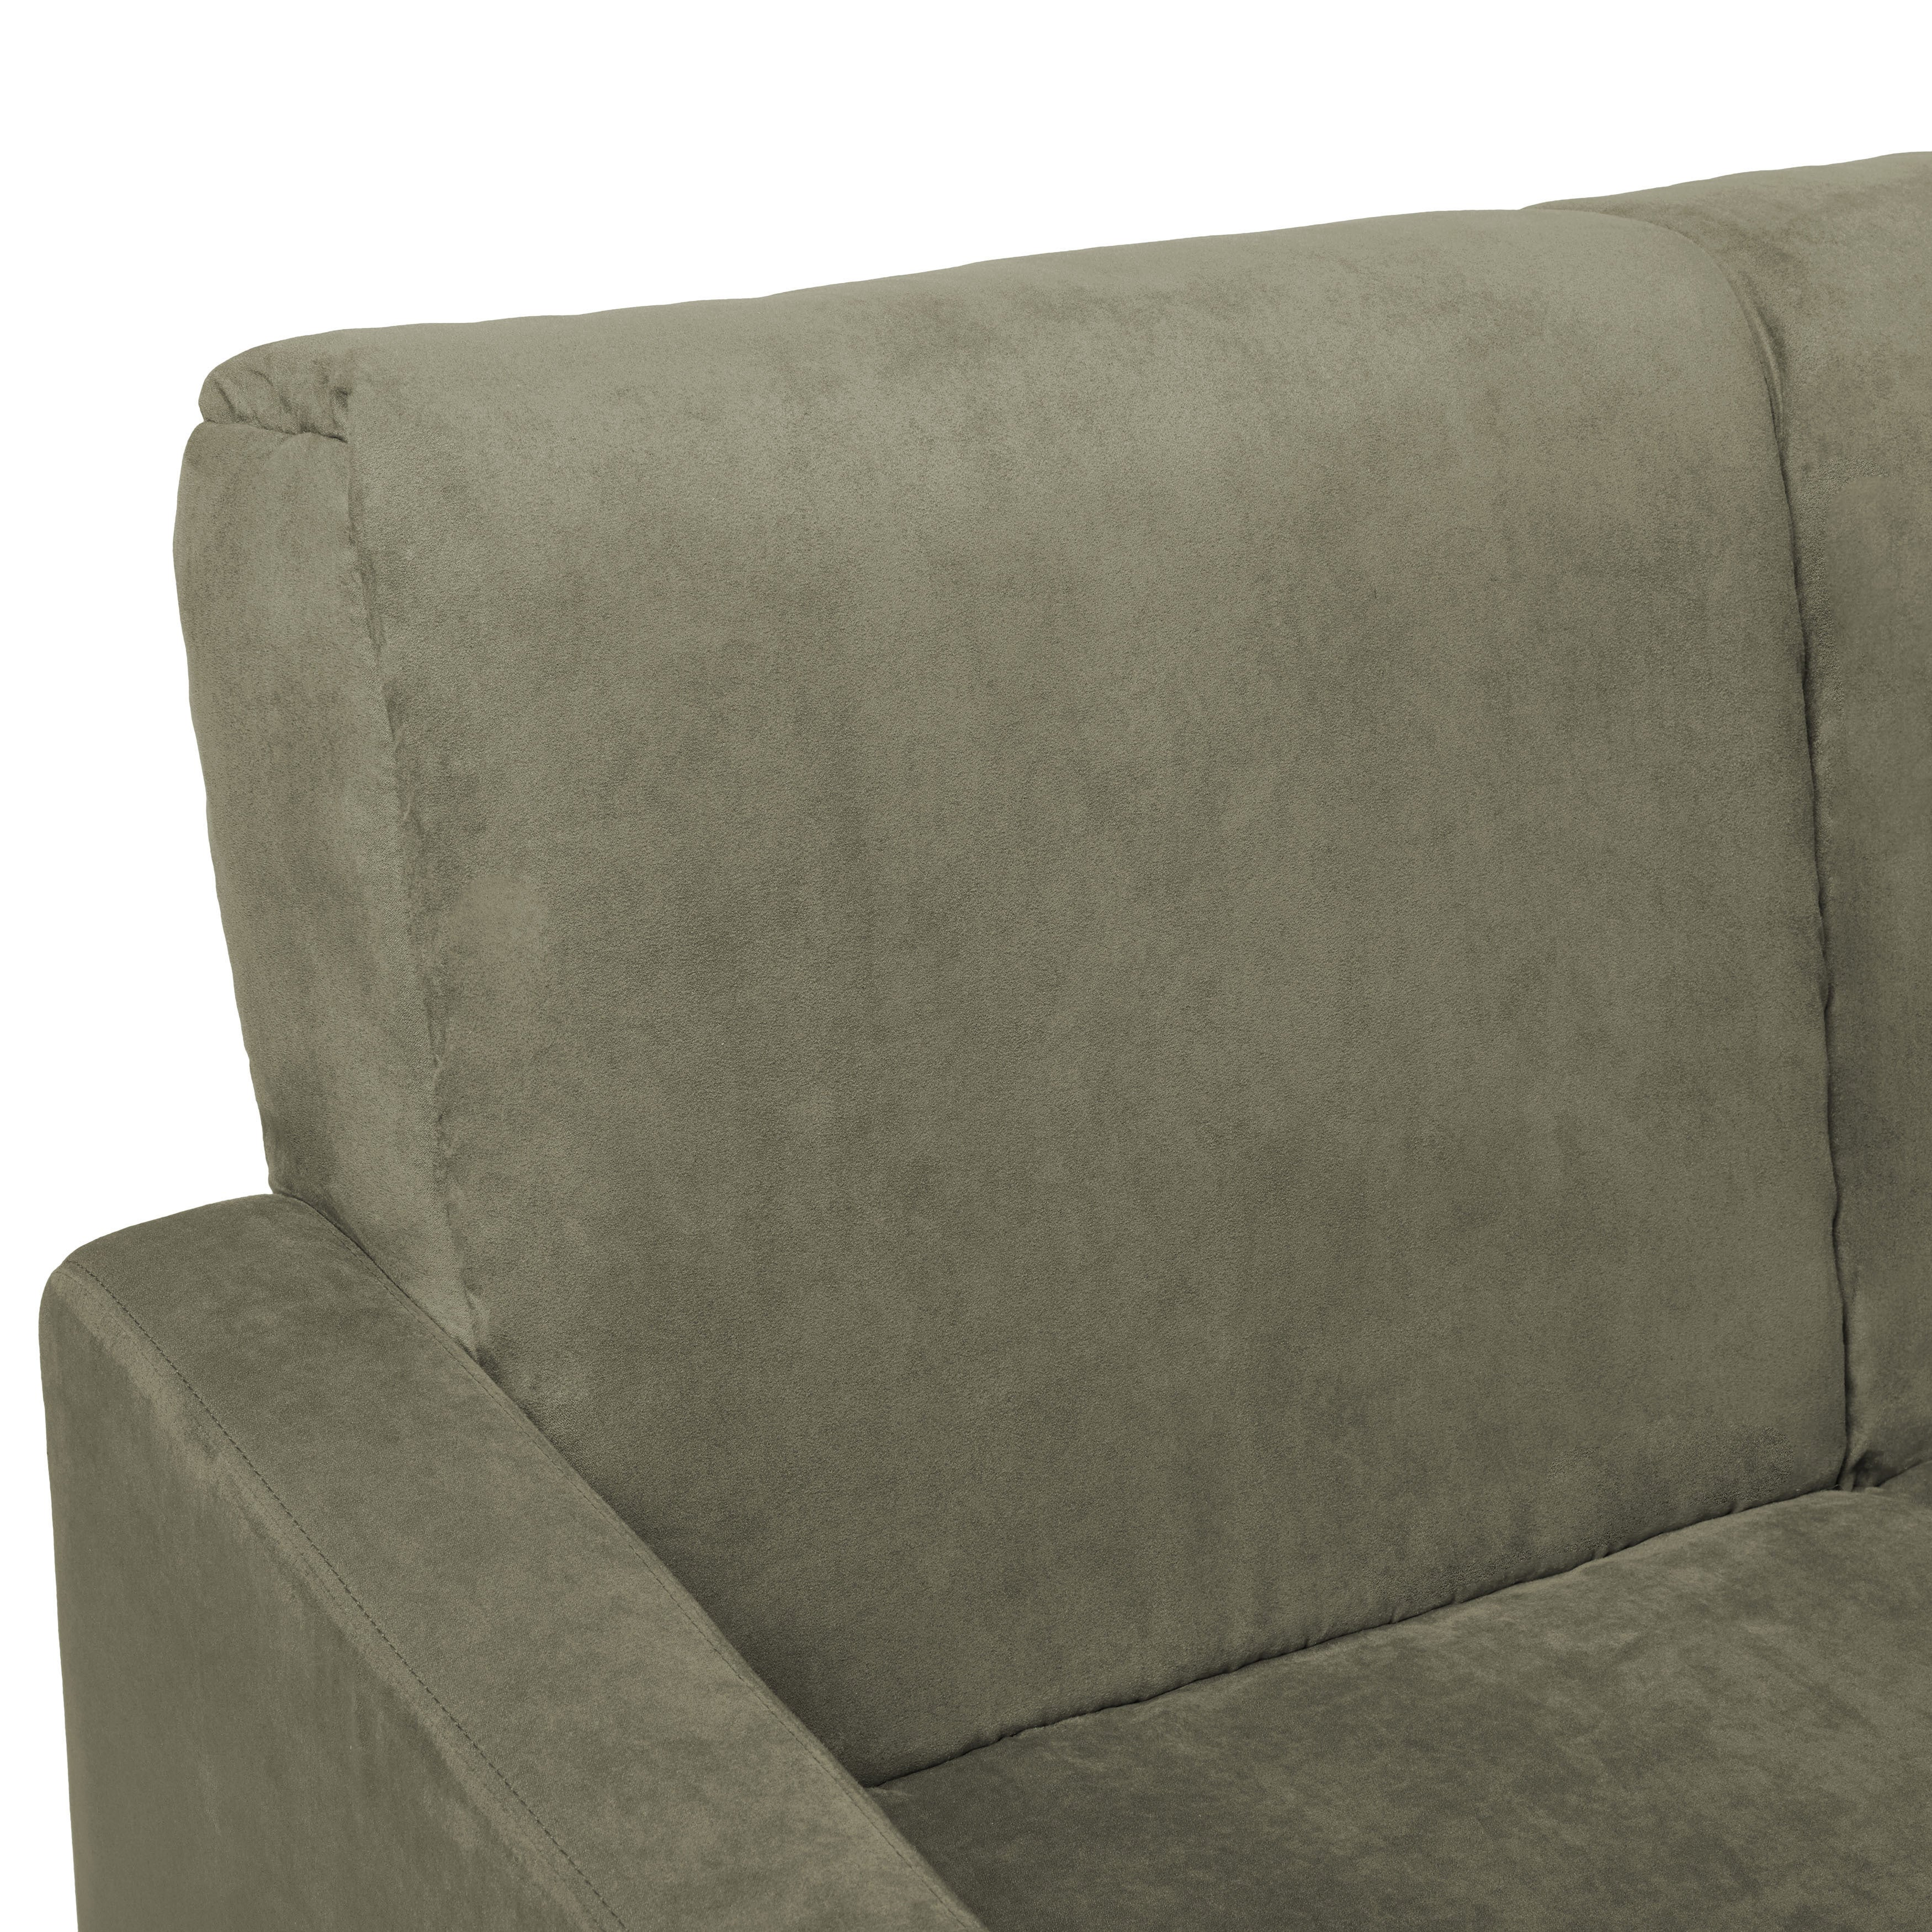 Shop Handy Living Trace Convert A Couch Sage Grey Microfiber Futon Sofa  Sleeper   Free Shipping Today   Overstock.com   5542801